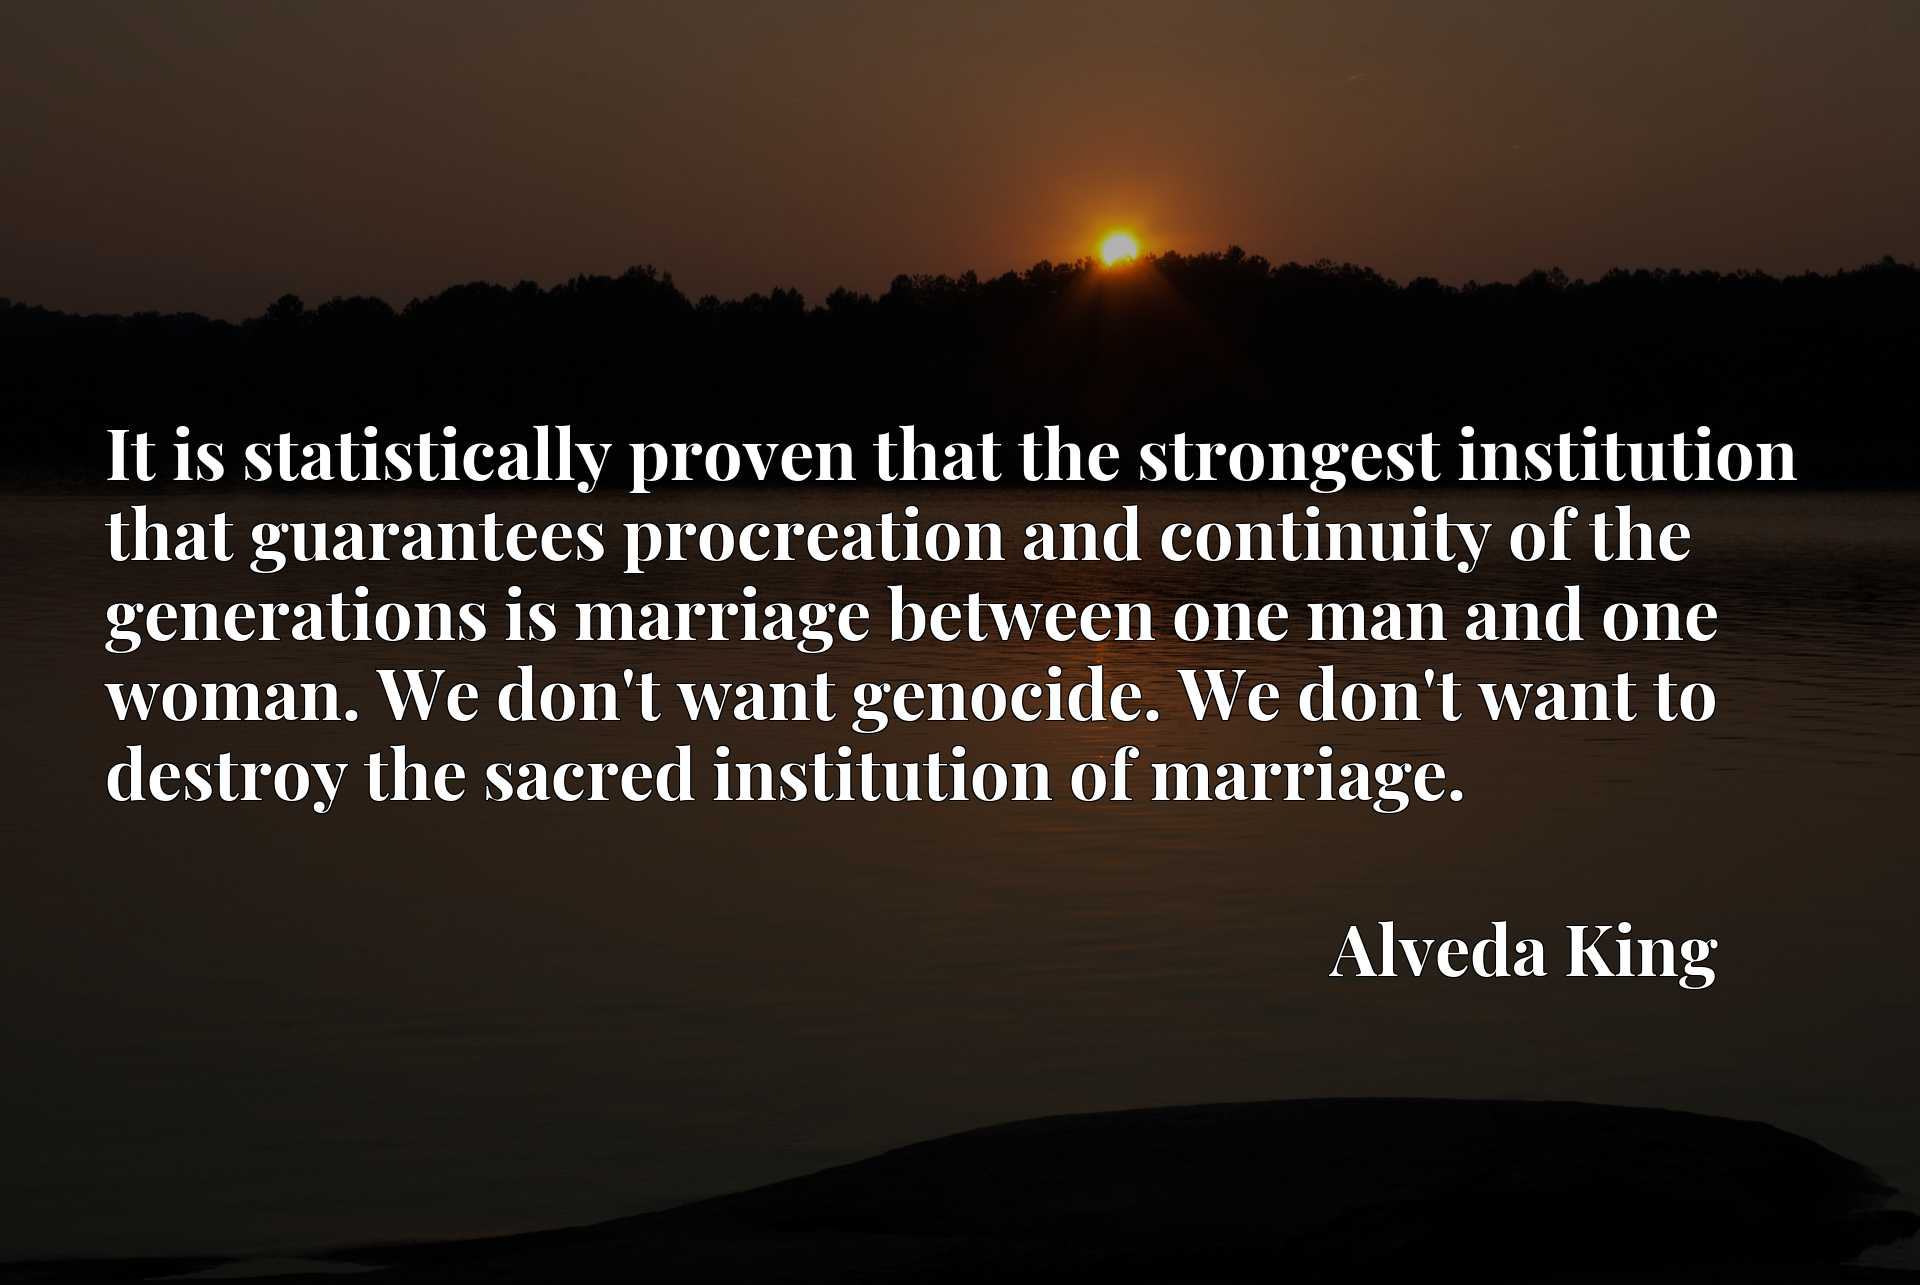 It is statistically proven that the strongest institution that guarantees procreation and continuity of the generations is marriage between one man and one woman. We don't want genocide. We don't want to destroy the sacred institution of marriage.